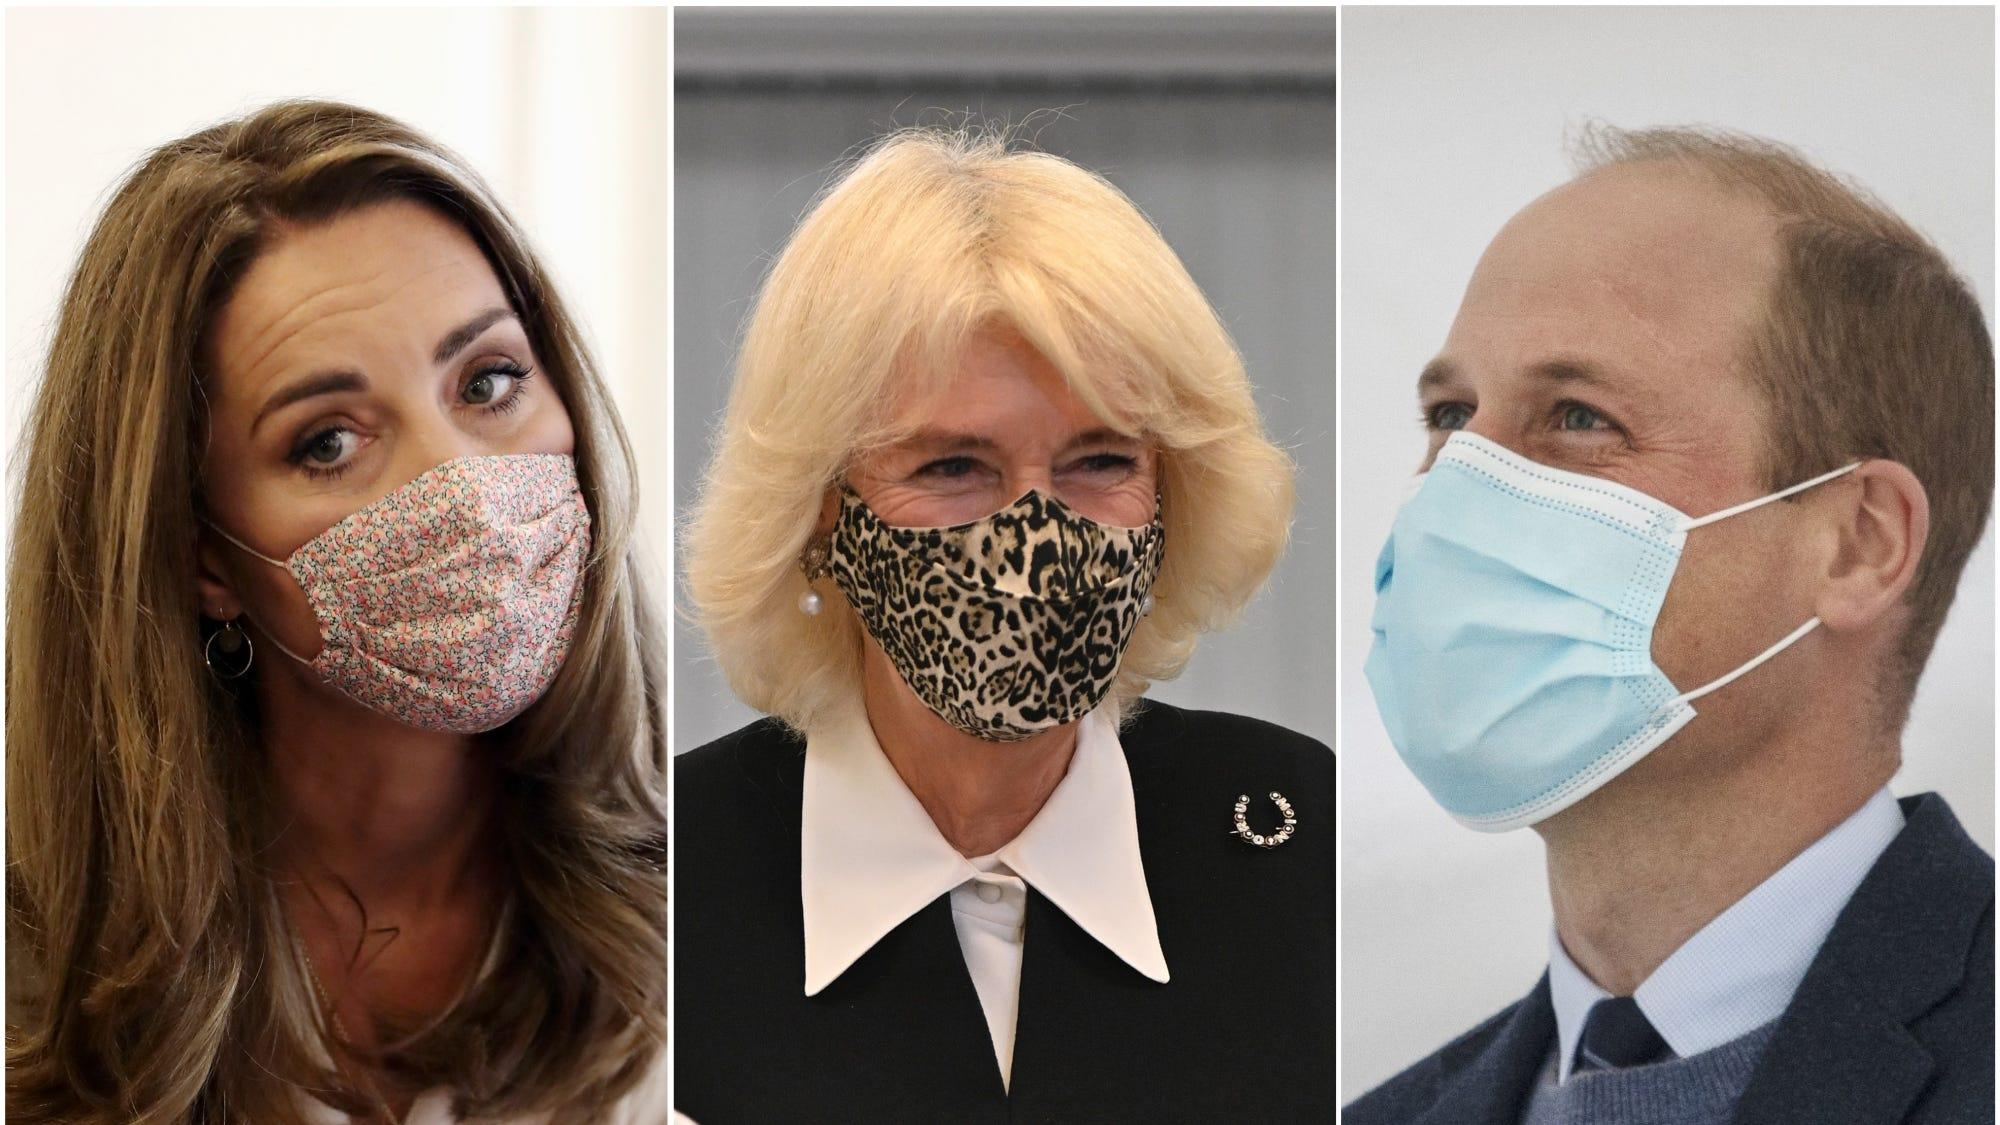 The royal family in their masks